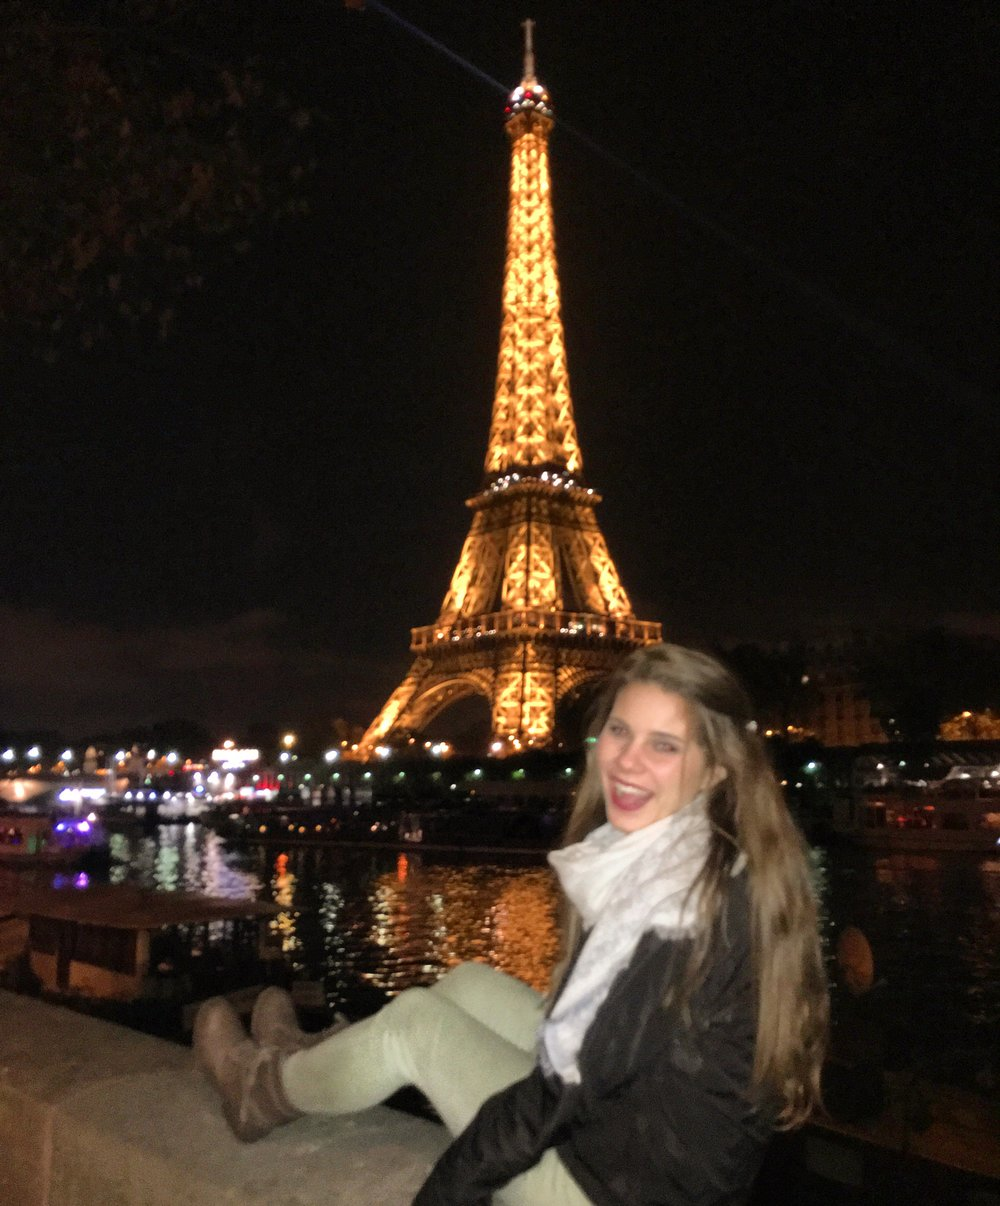 Jessica visiting the Eiffel Tower.